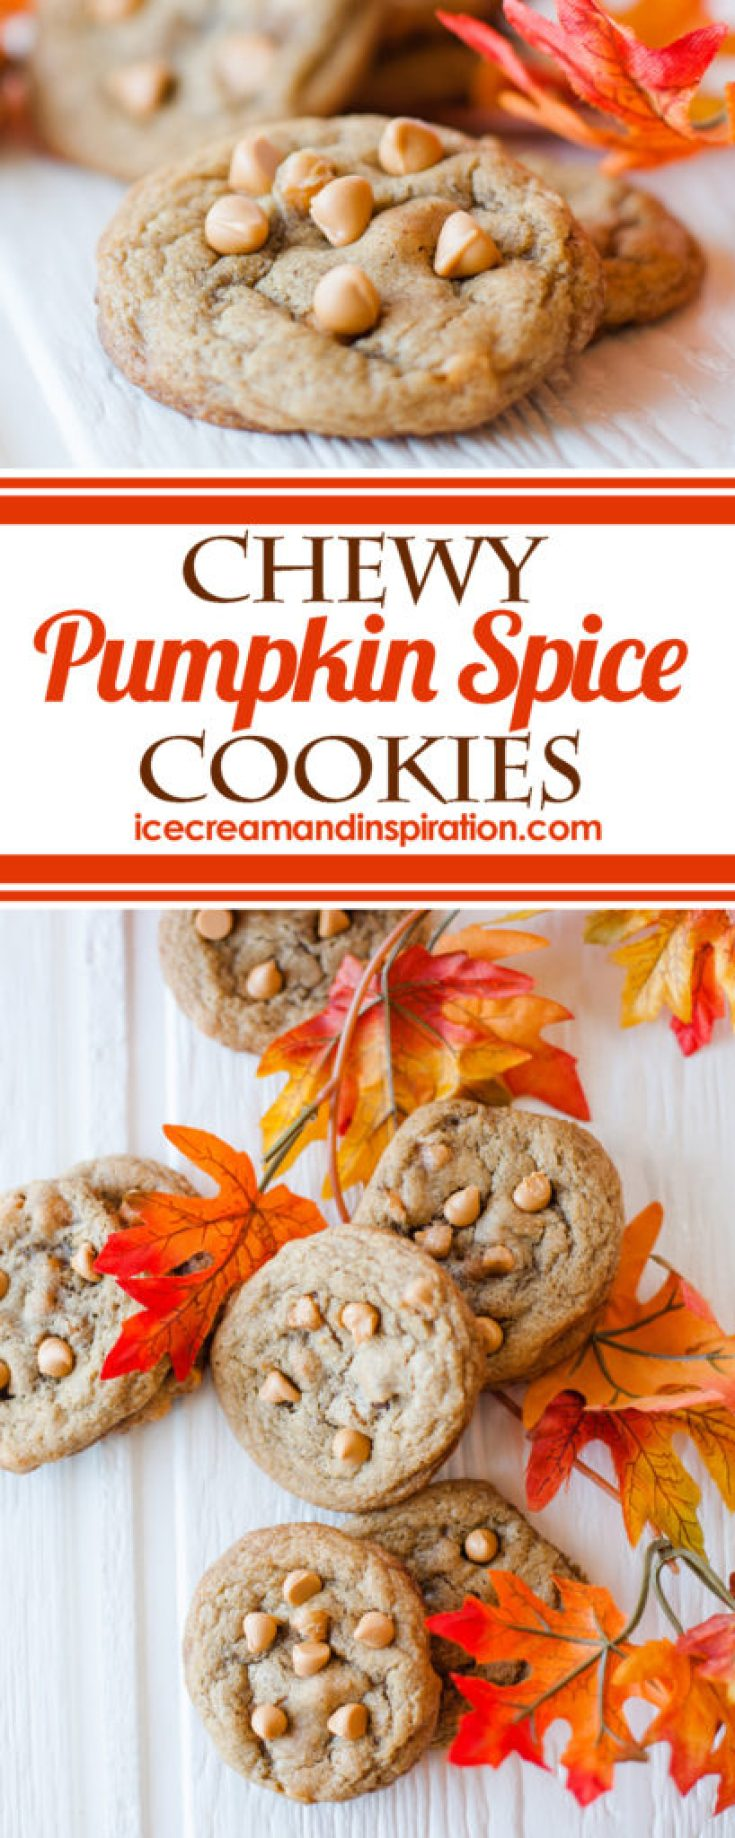 These chewy, soft pumpkin cookies are a new take on the classic chocolate chip cookie! With a tender interior and slightly crispy edge, full of pumpkin, cinnamon, and all the other spices you love for fall, they are the perfect addiction for the season!